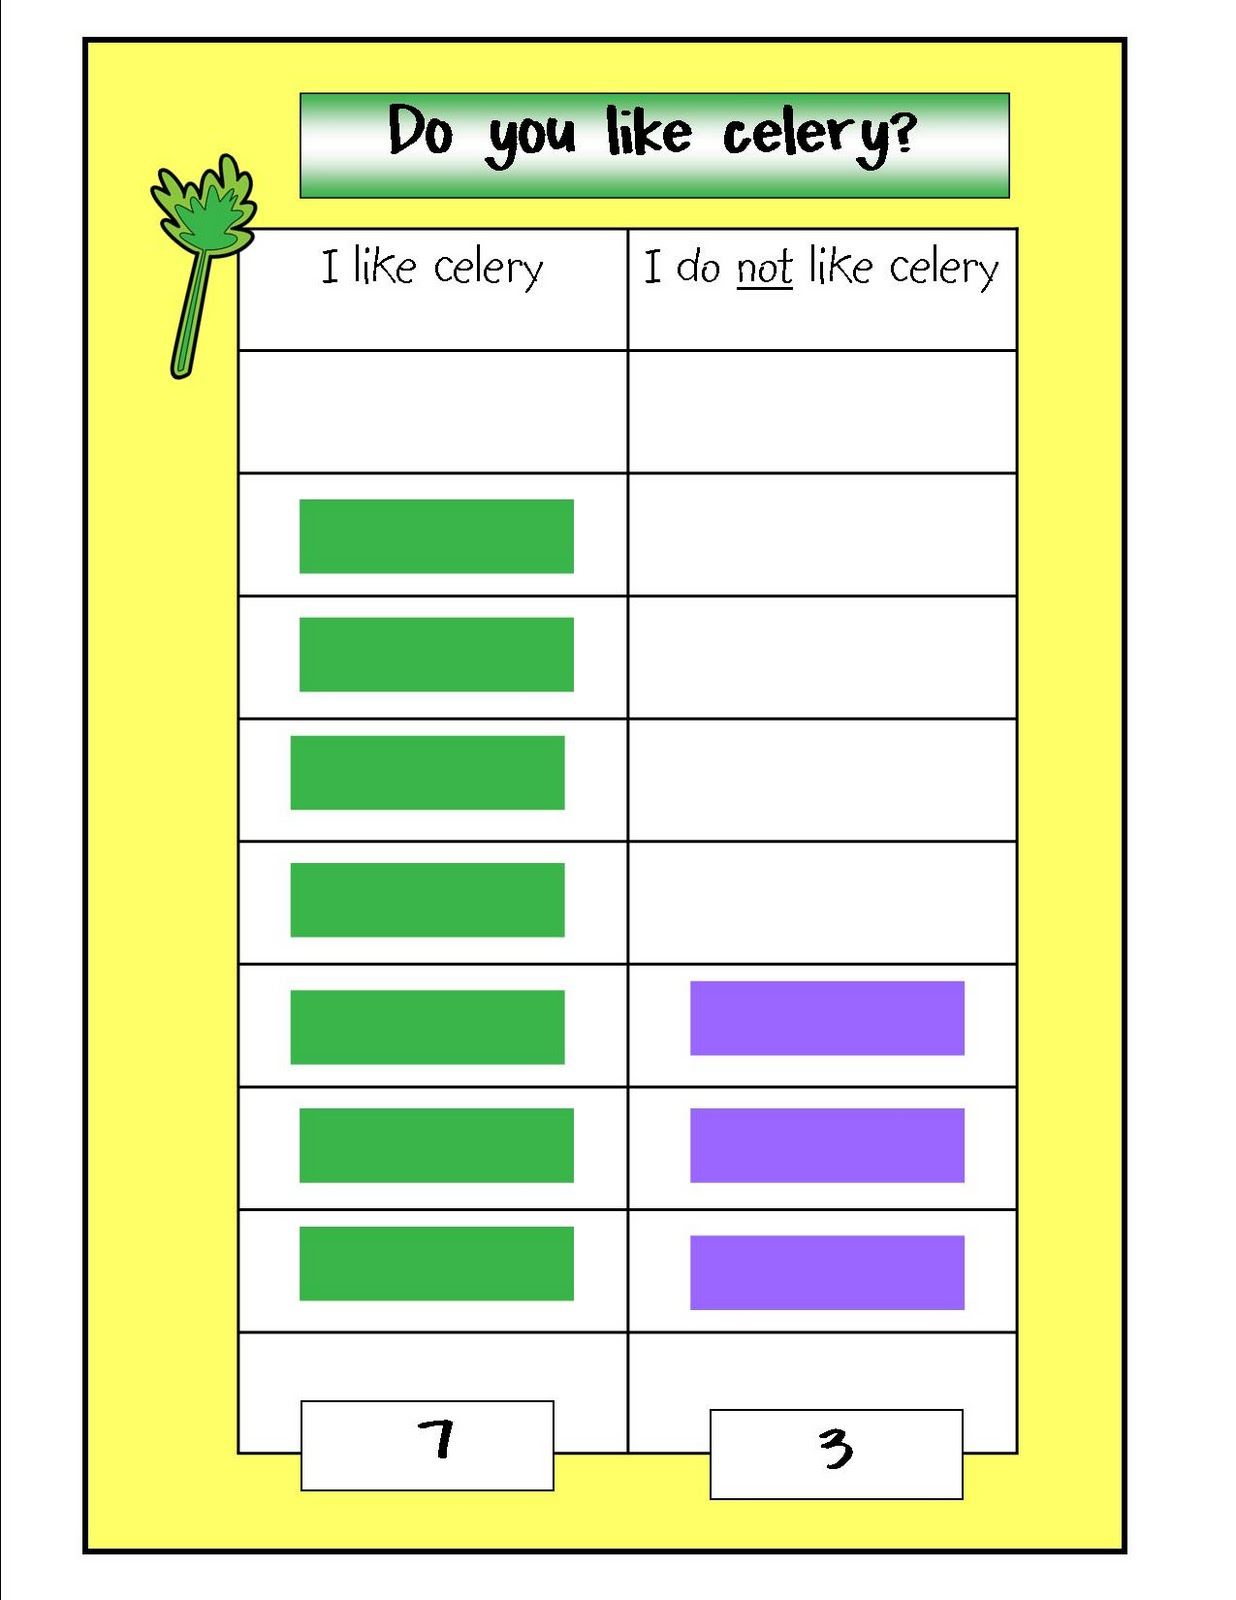 Kindergarten Crayons: Sensational Celery | Celery Experiment Printable Worksheet